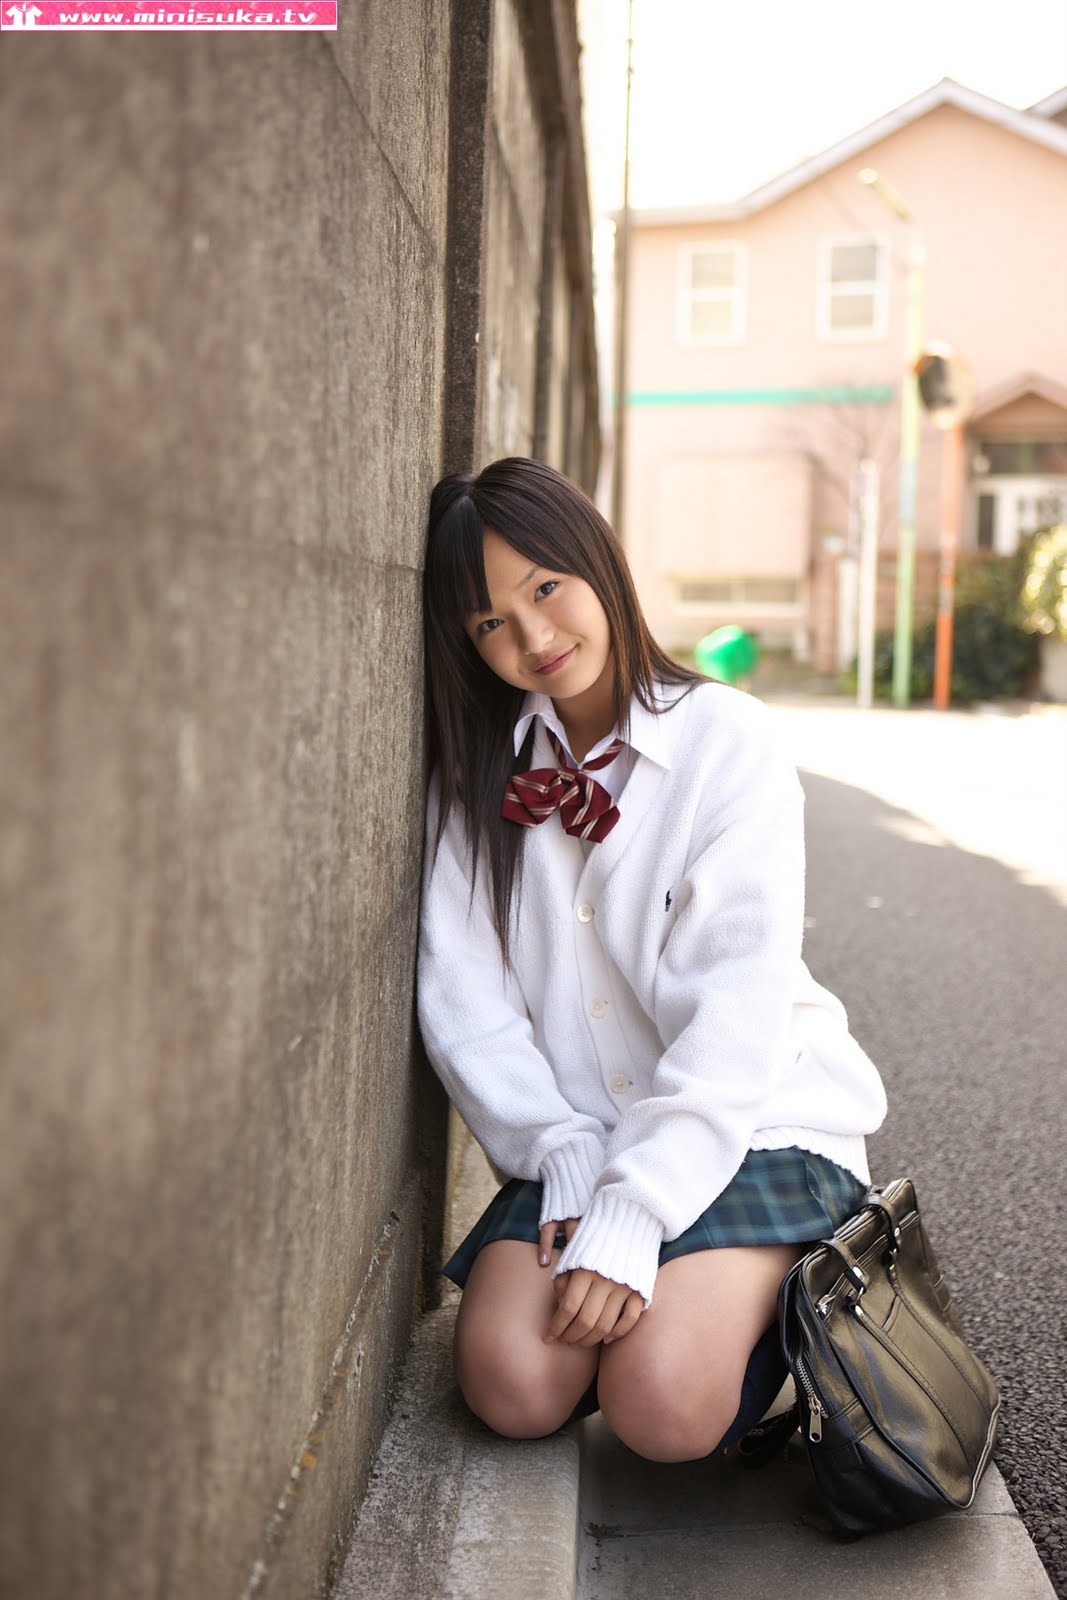 Mayumi%2525252BYamanaka%2525252Bin%2525252Bwinter%2525252Bschool%2525252Buniform08 1000s Of Real EX Girlfriend